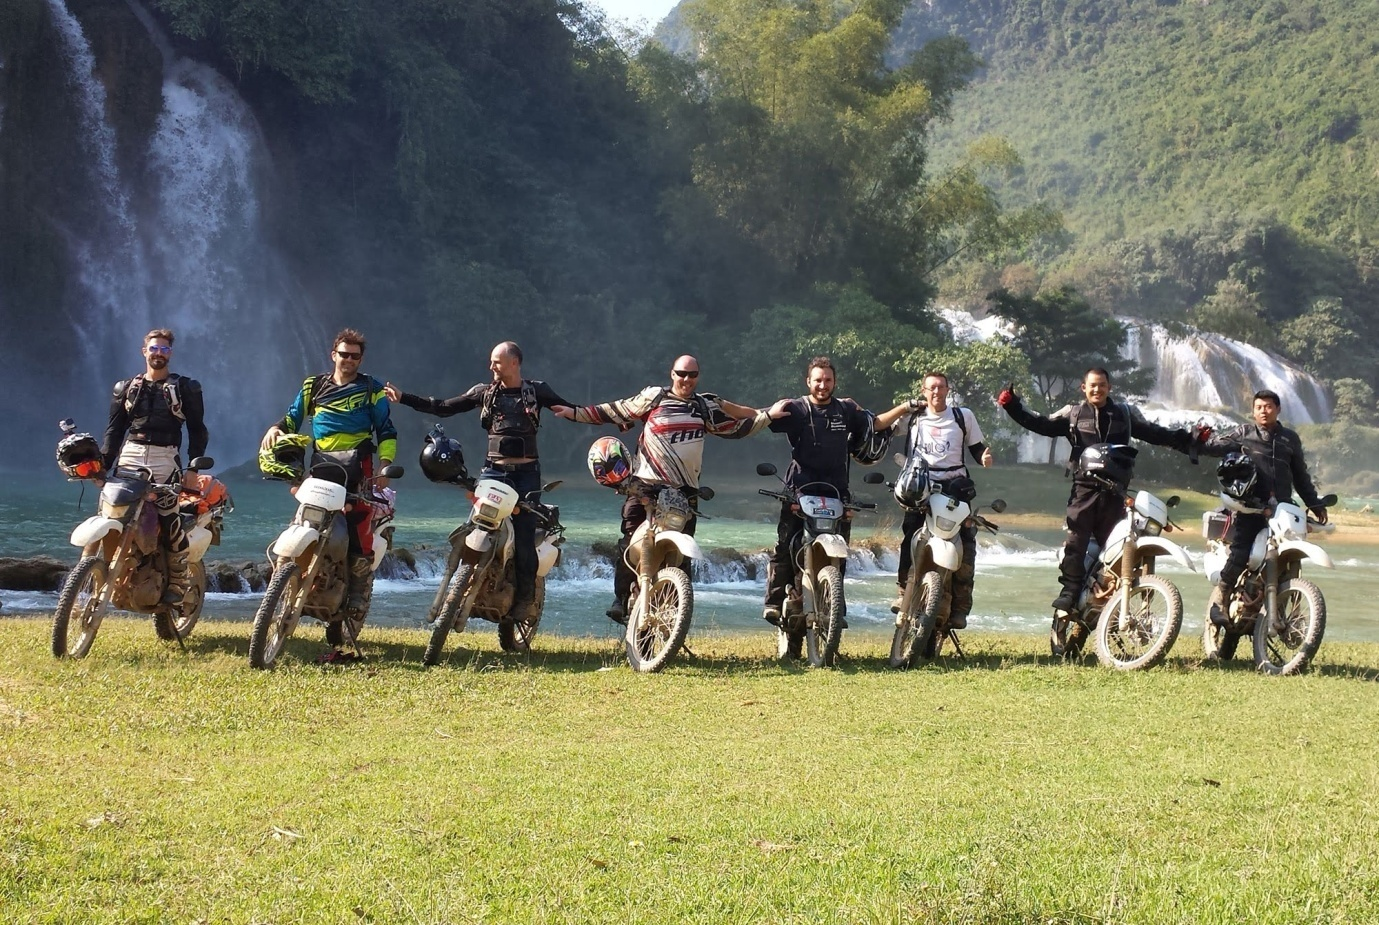 Vietnam by motorcycle is an interesting challenge